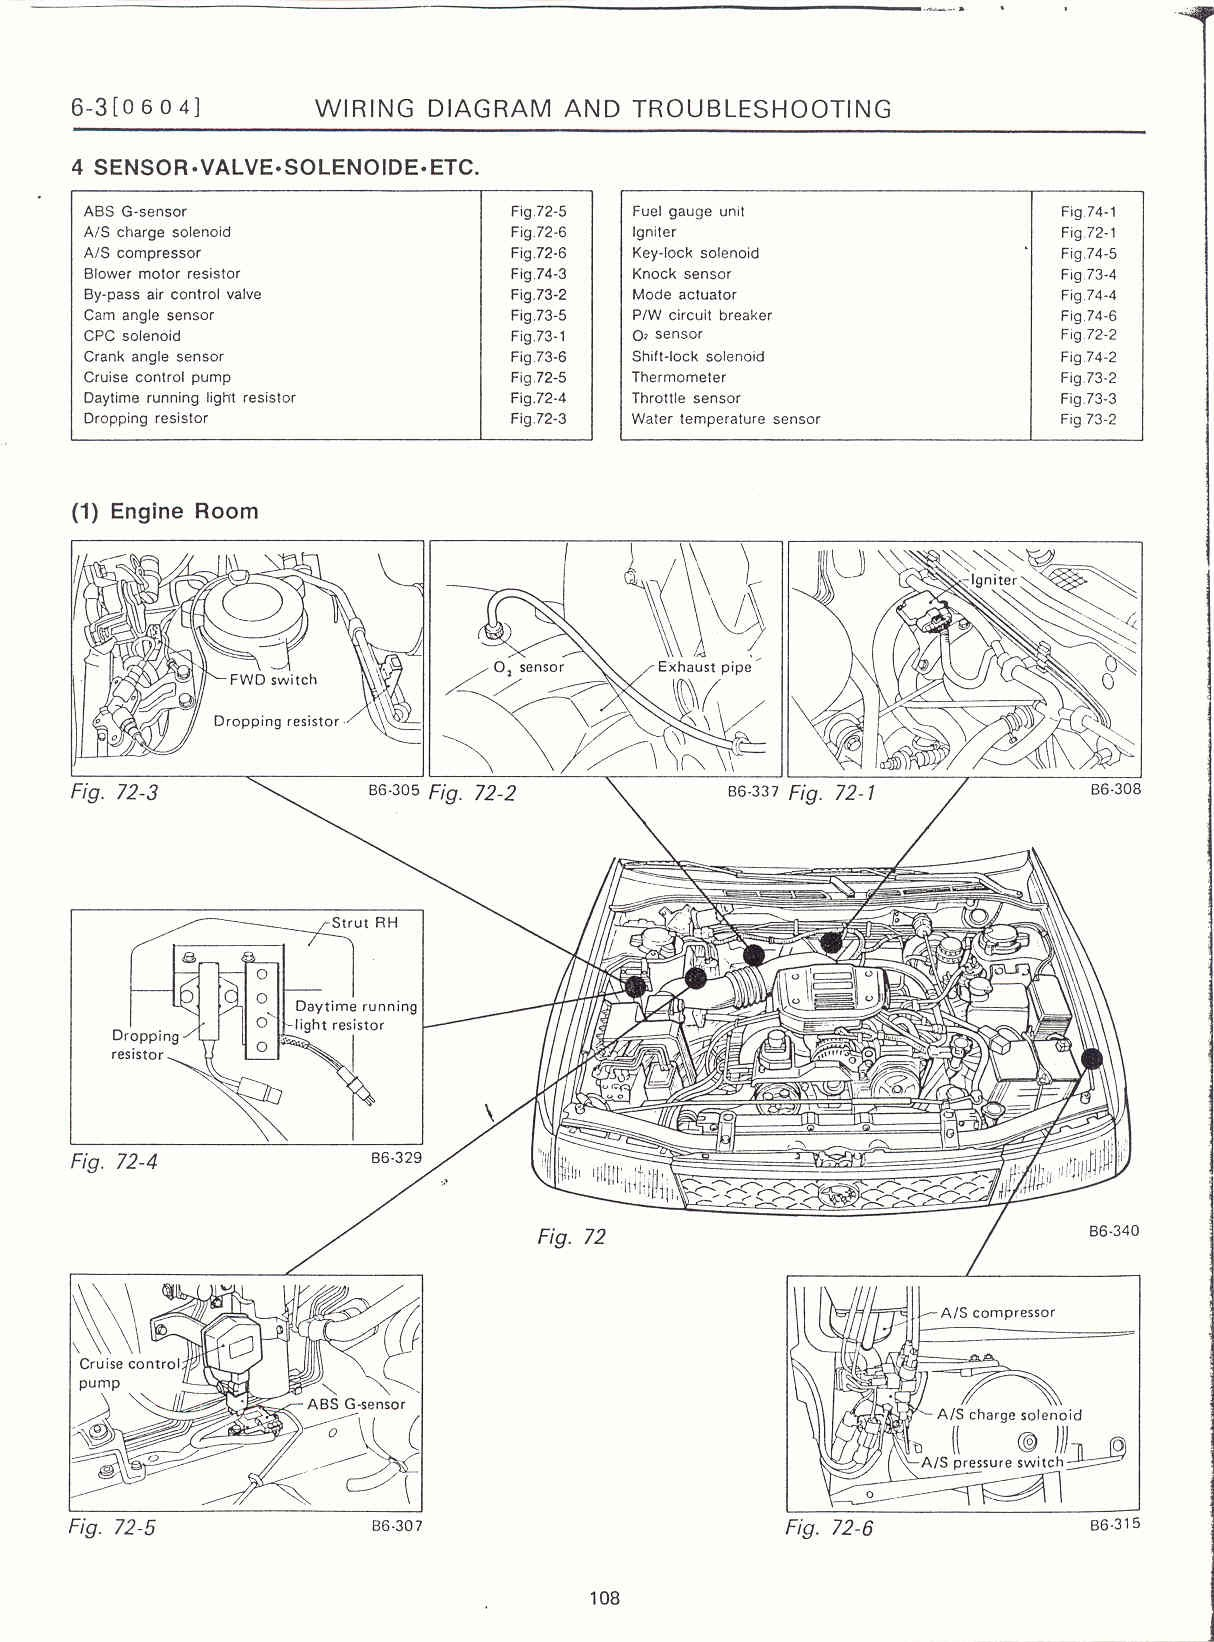 2004 subaru wrx engine diagram 2002 subaru wrx engine diagram